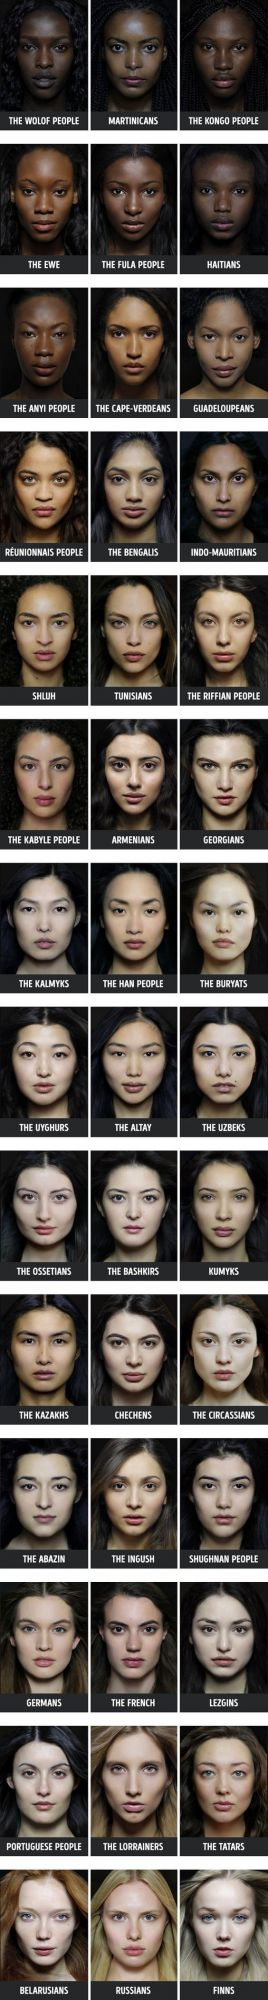 Women, skin color, face, appearance, palette, people, nations, countries